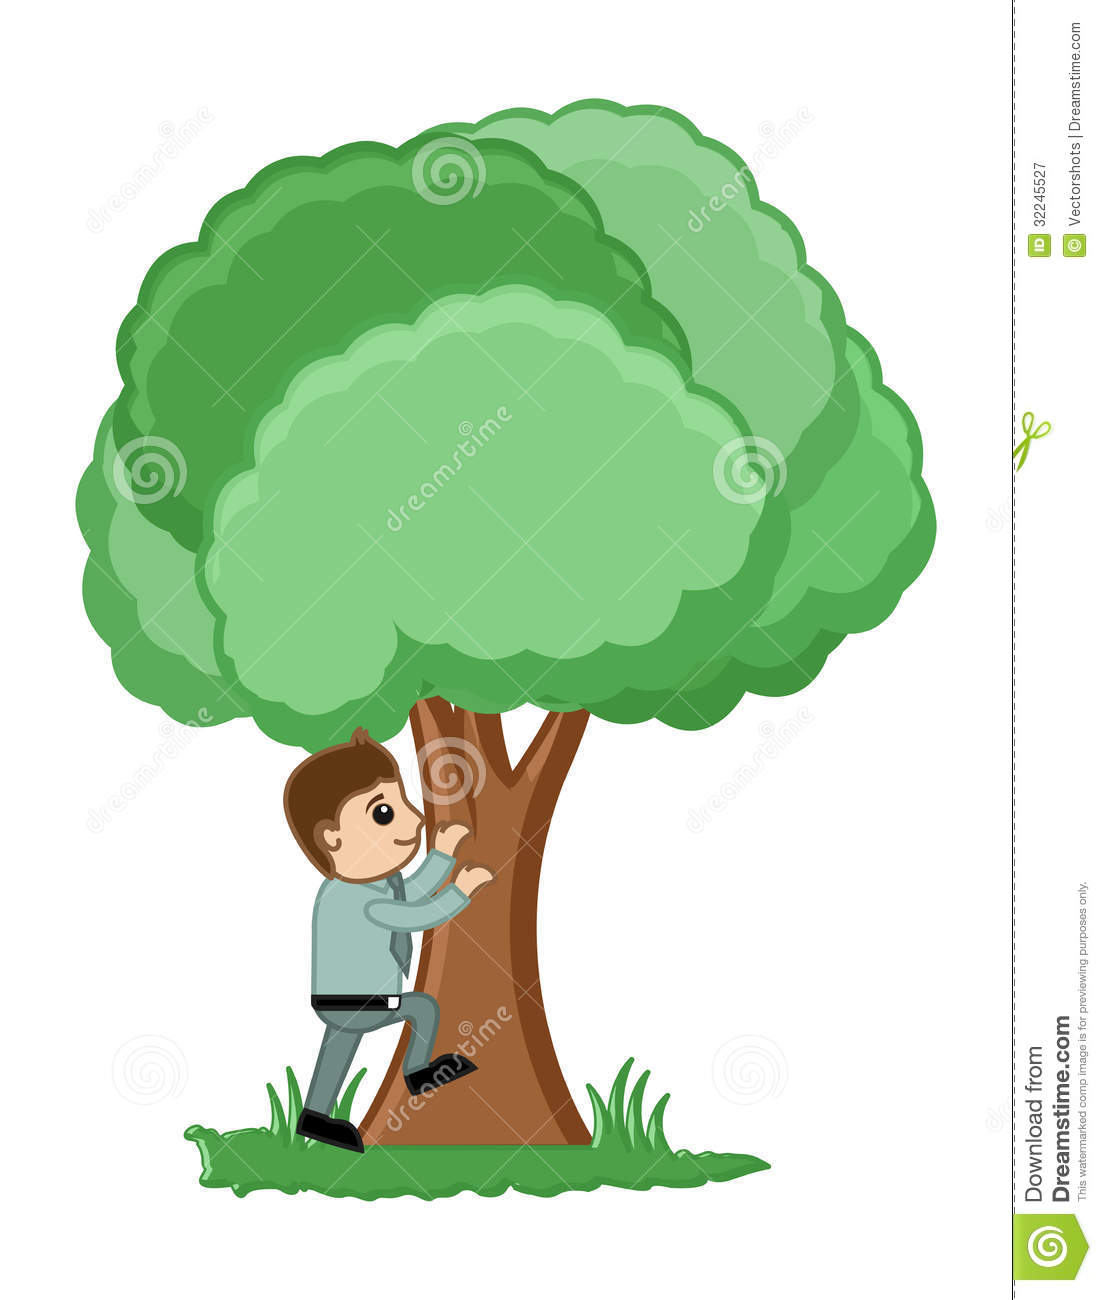 Tree Climb Stock Illustrations 2 484 Tree Climb Stock Illustrations Vectors Clipart Dreamstime Tree cartoon climbing climbing tree tree cartoon climbing cartoon background symbol decoration trees decorative plant ornament icon natural nature backdrop cute sketch outline christmas tree element colorful environment emblem christmas painting ecology character leaves green cartoons. dreamstime com